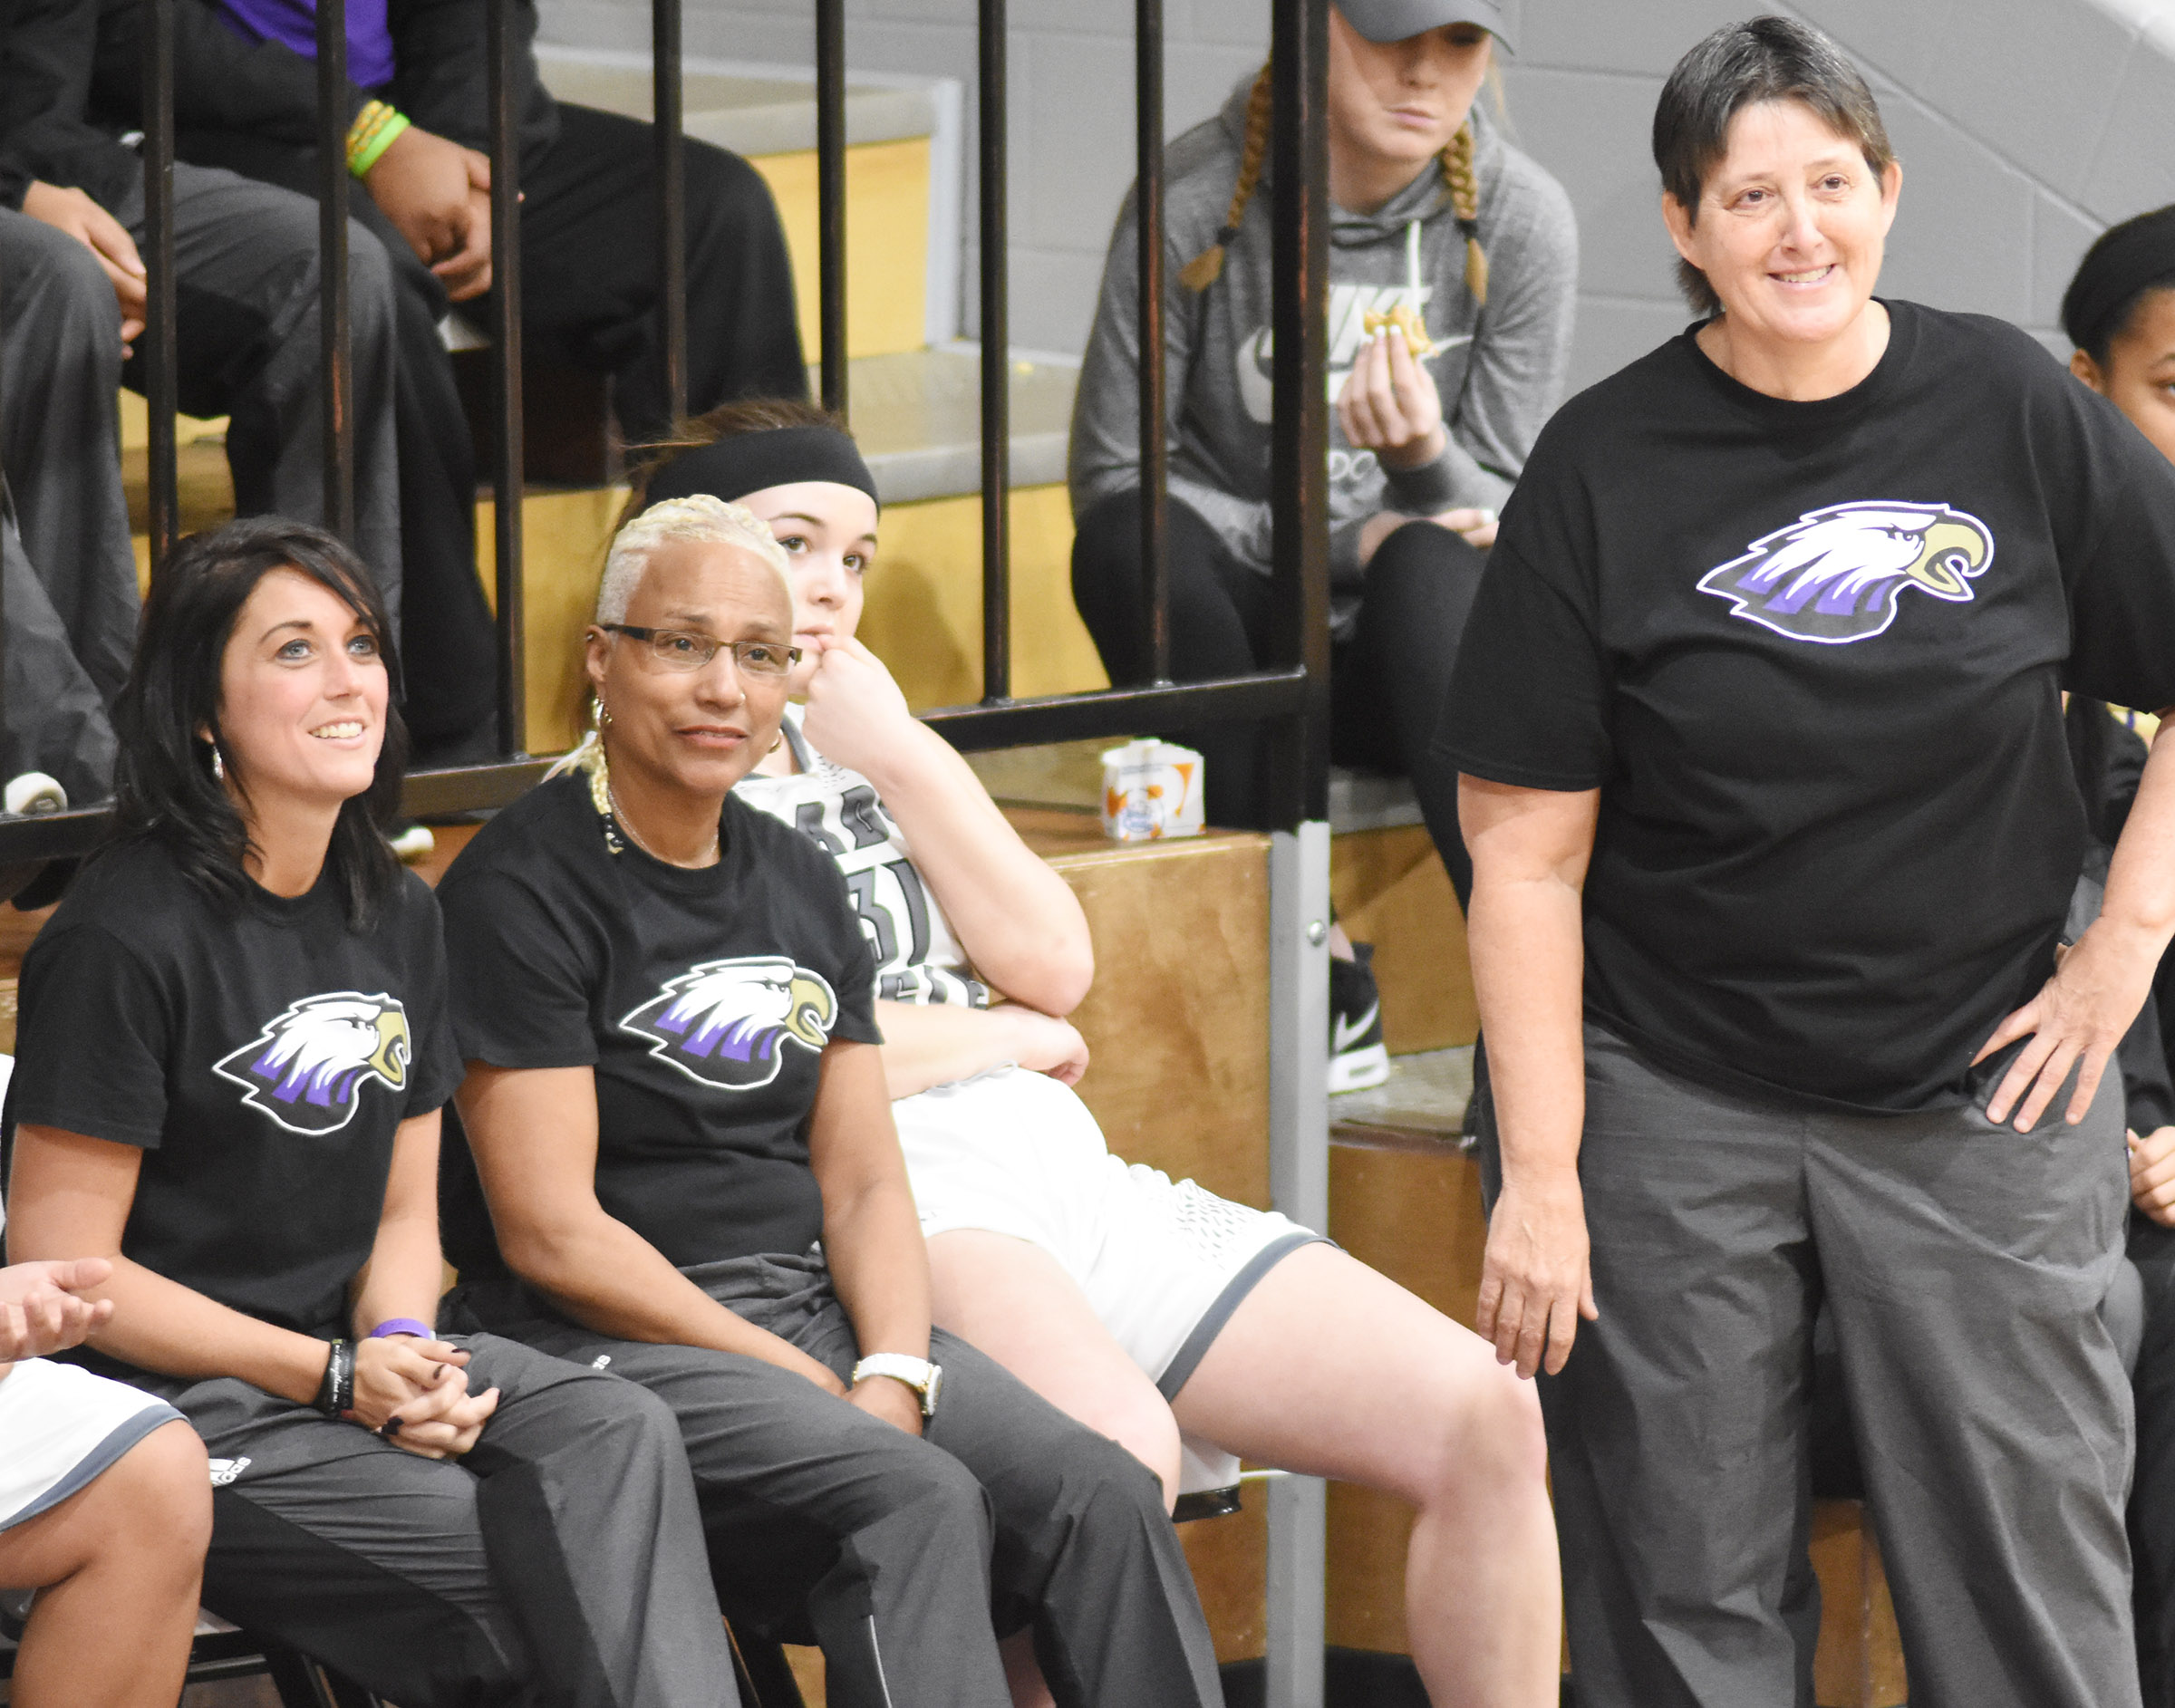 CHS girls' basketball assistant coaches, from left, Natalia Warren, Debbie Gowdy-Smith and Katie Wilkerson smile as their players score.